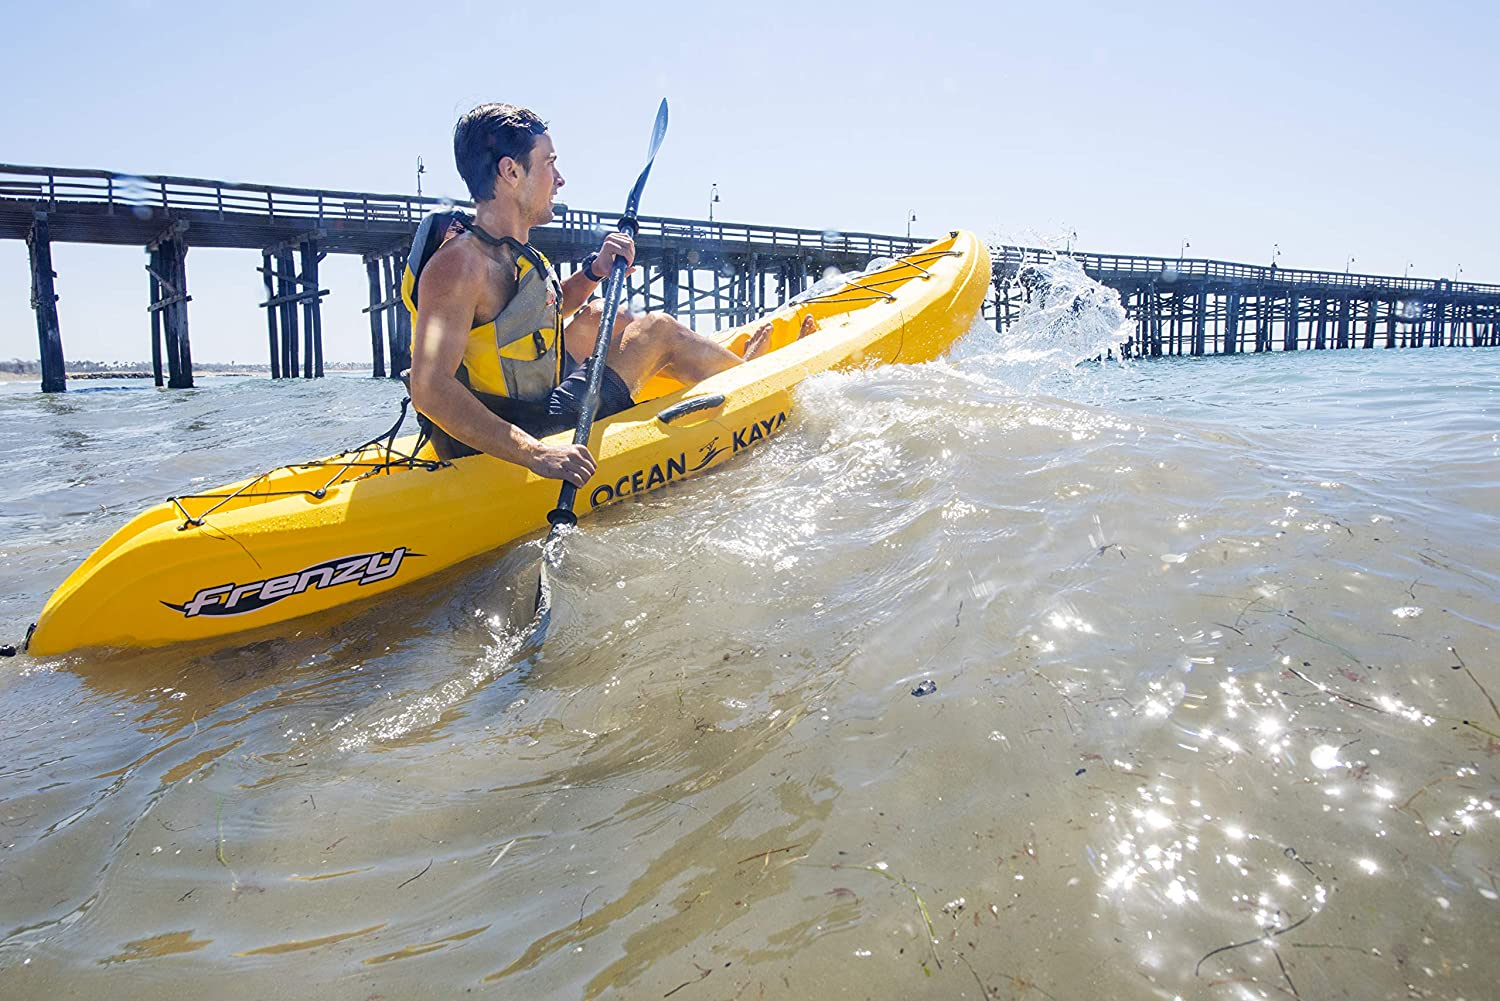 Ocean Kayak Frenzy Black Friday Deal 2020